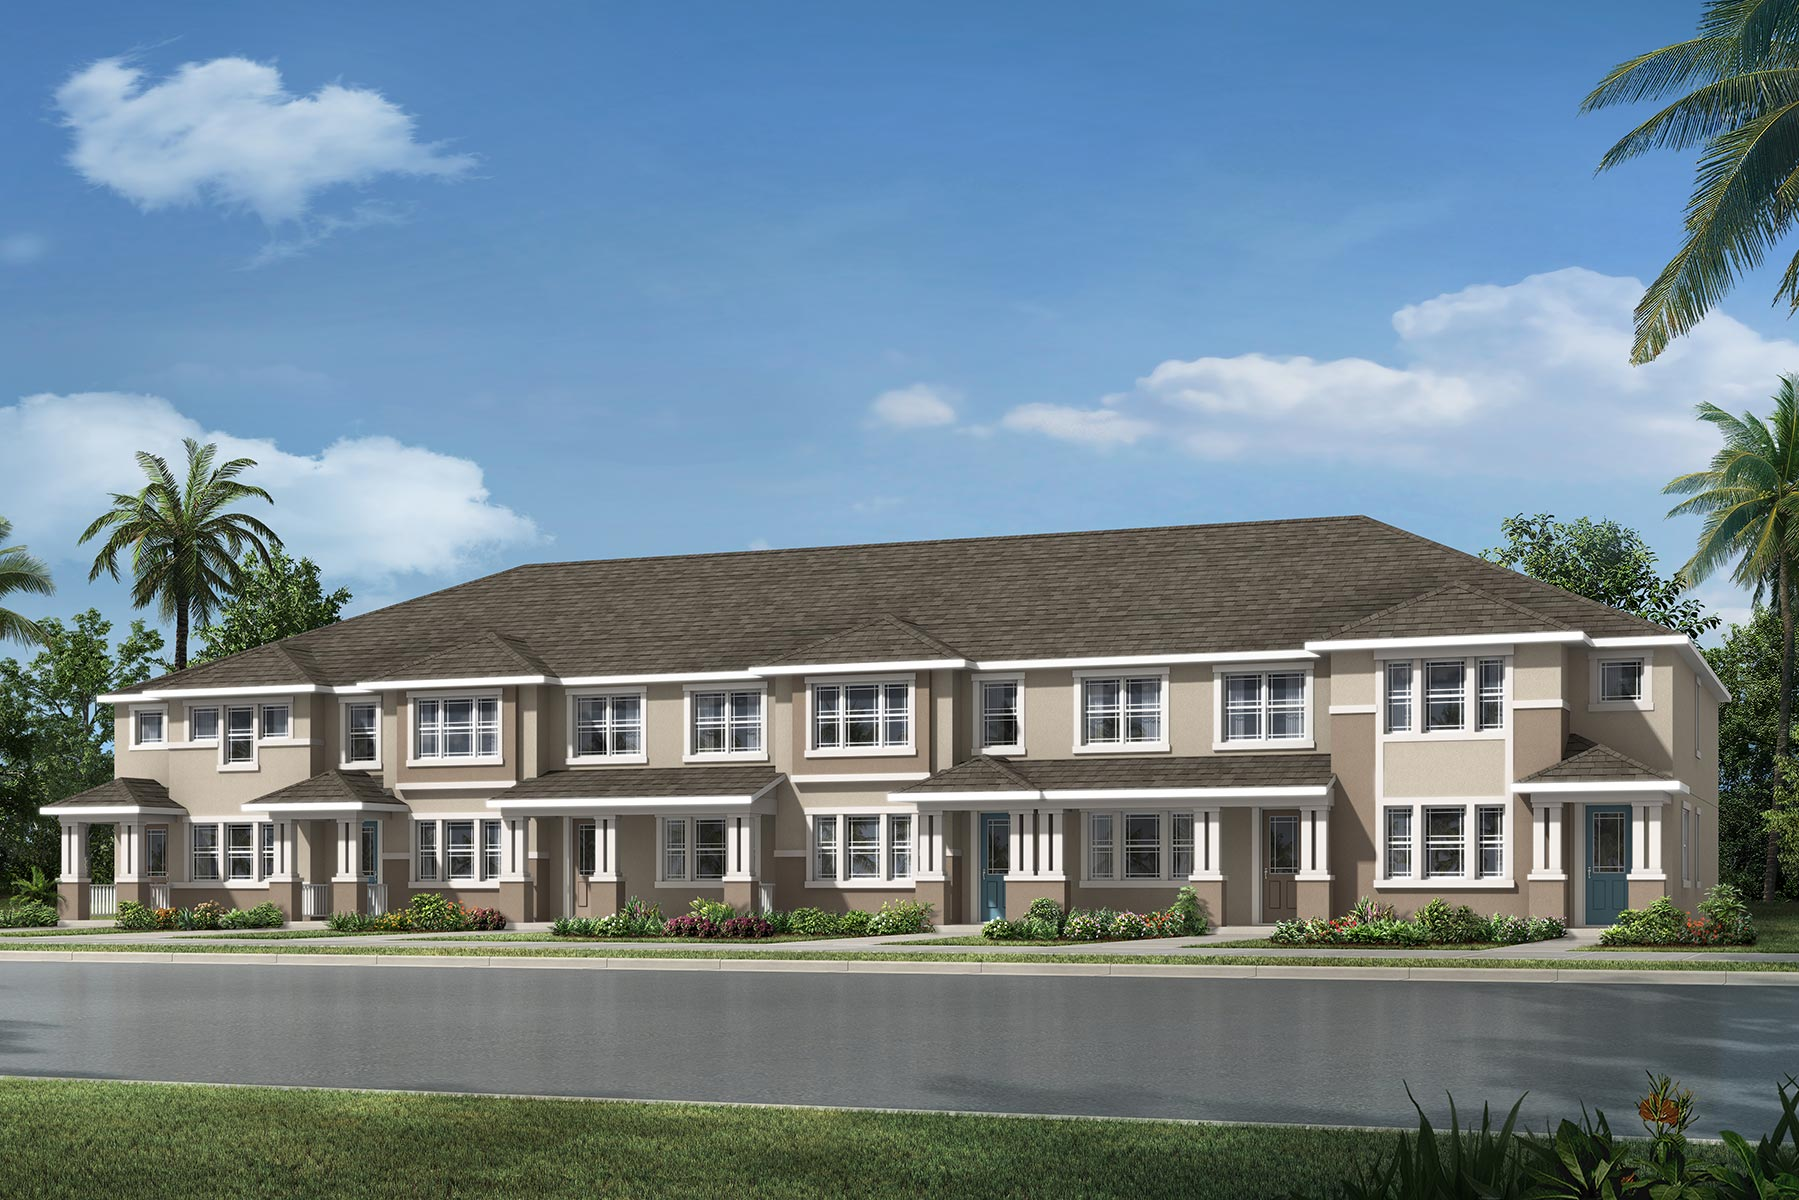 Dancy Plan TownHomes at Legado in Windermere Florida by Mattamy Homes